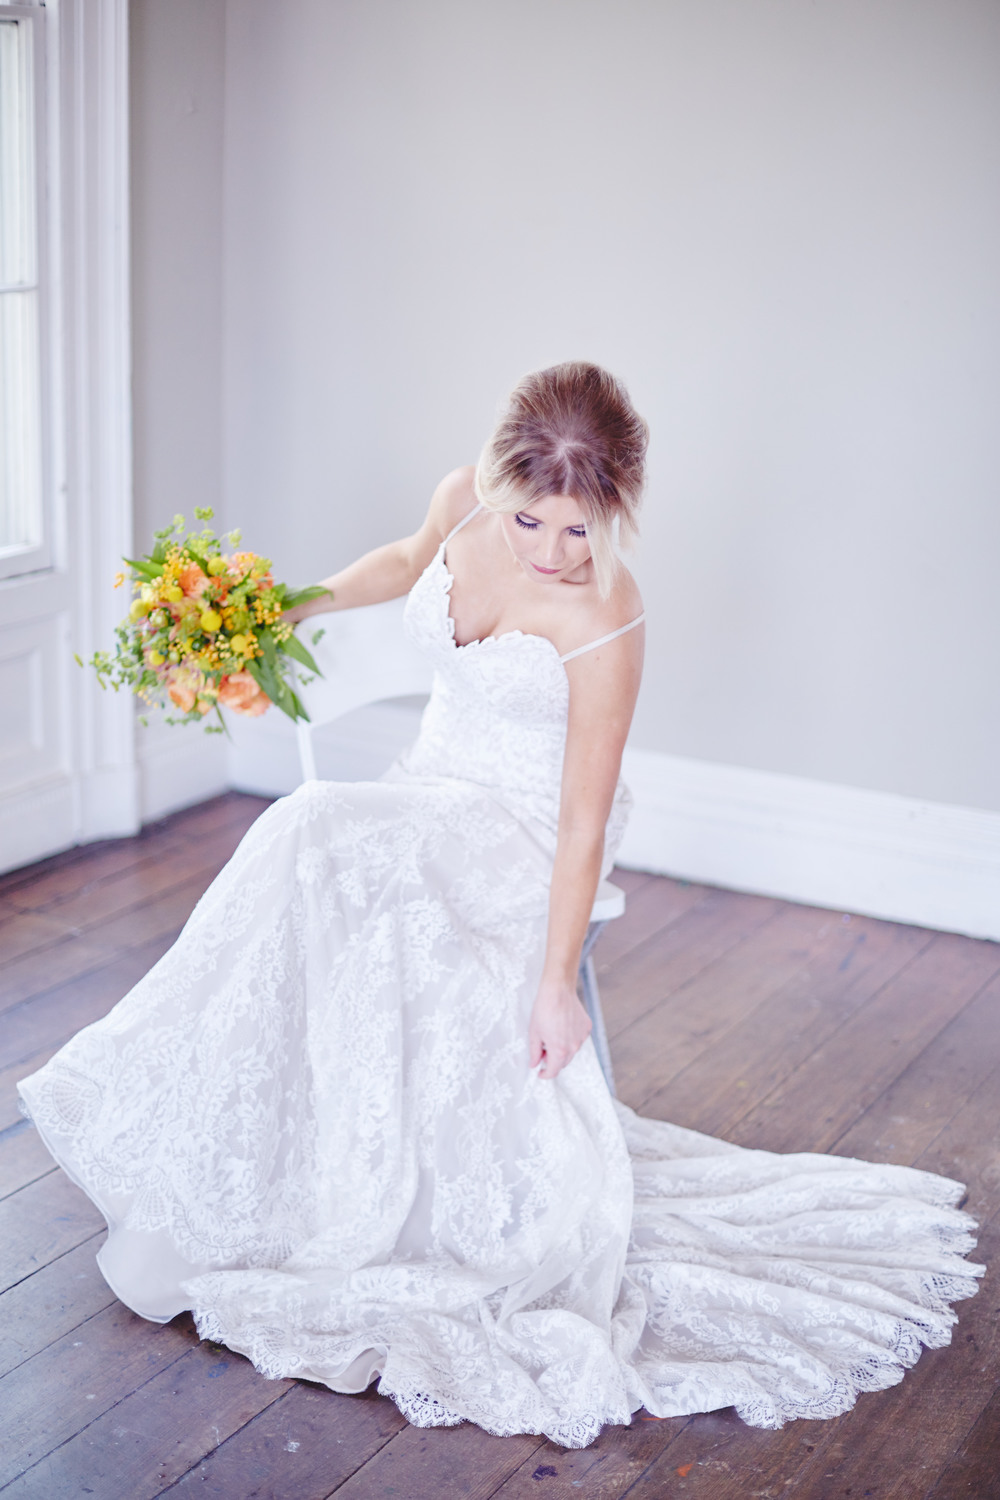 Styled_Session_Becca_Bridal_Portraits_Sarah_Tau_Photography_HOB_Studio_285 65.jpg